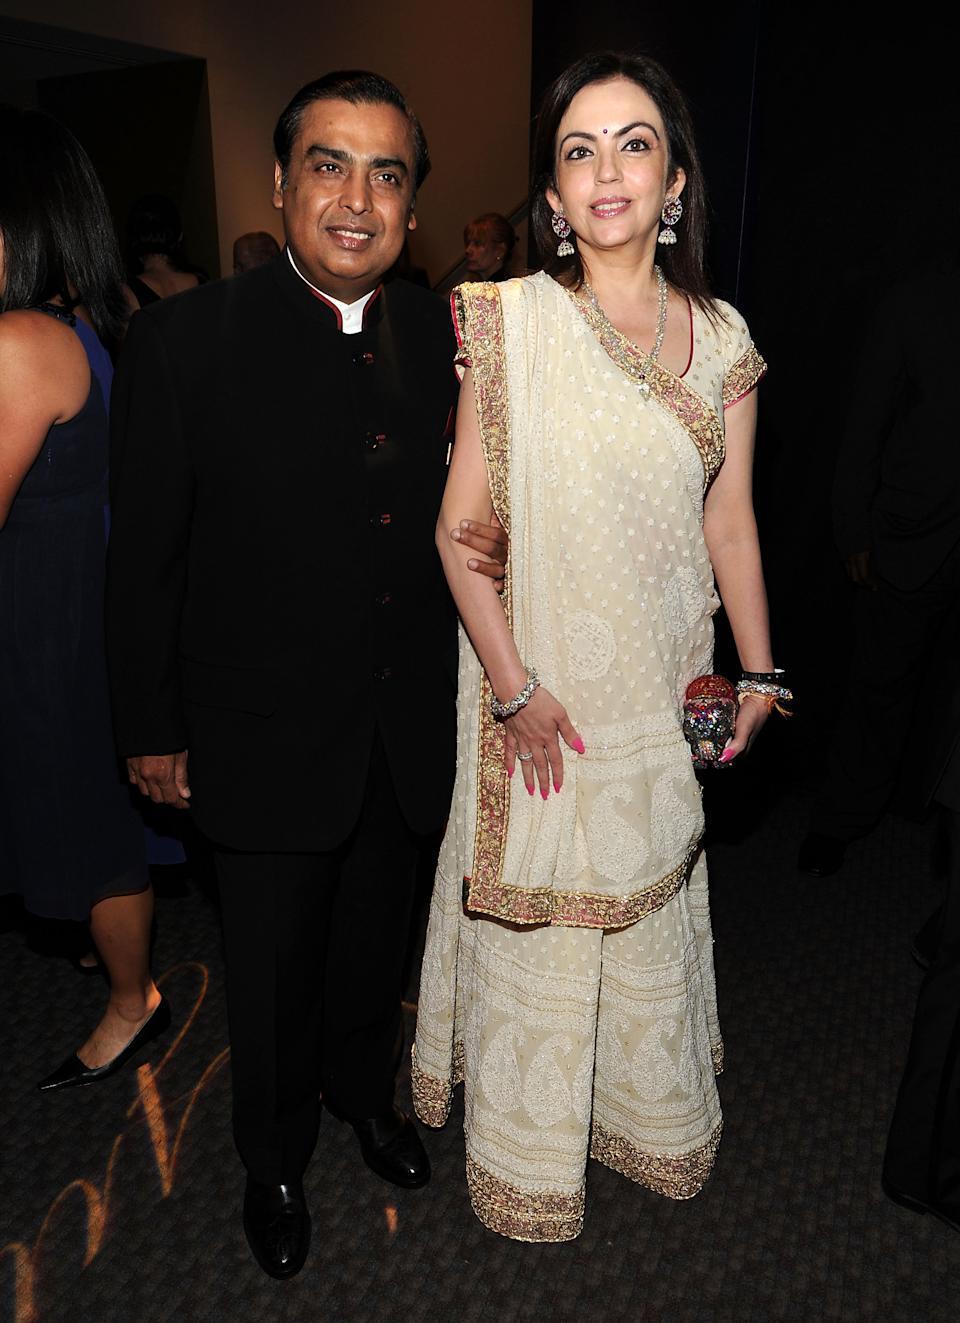 NEW YORK, NY - APRIL 26: Chairman and Managing Director of Reliance Industries Mukesh Ambani (L) attends the TIME 100 Gala, TIME'S 100 Most Influential People In The World at Frederick P. Rose Hall, Jazz at Lincoln Center on April 26, 2011 in New York City. (Photo by Larry Busacca/Getty Images for Time Warner)